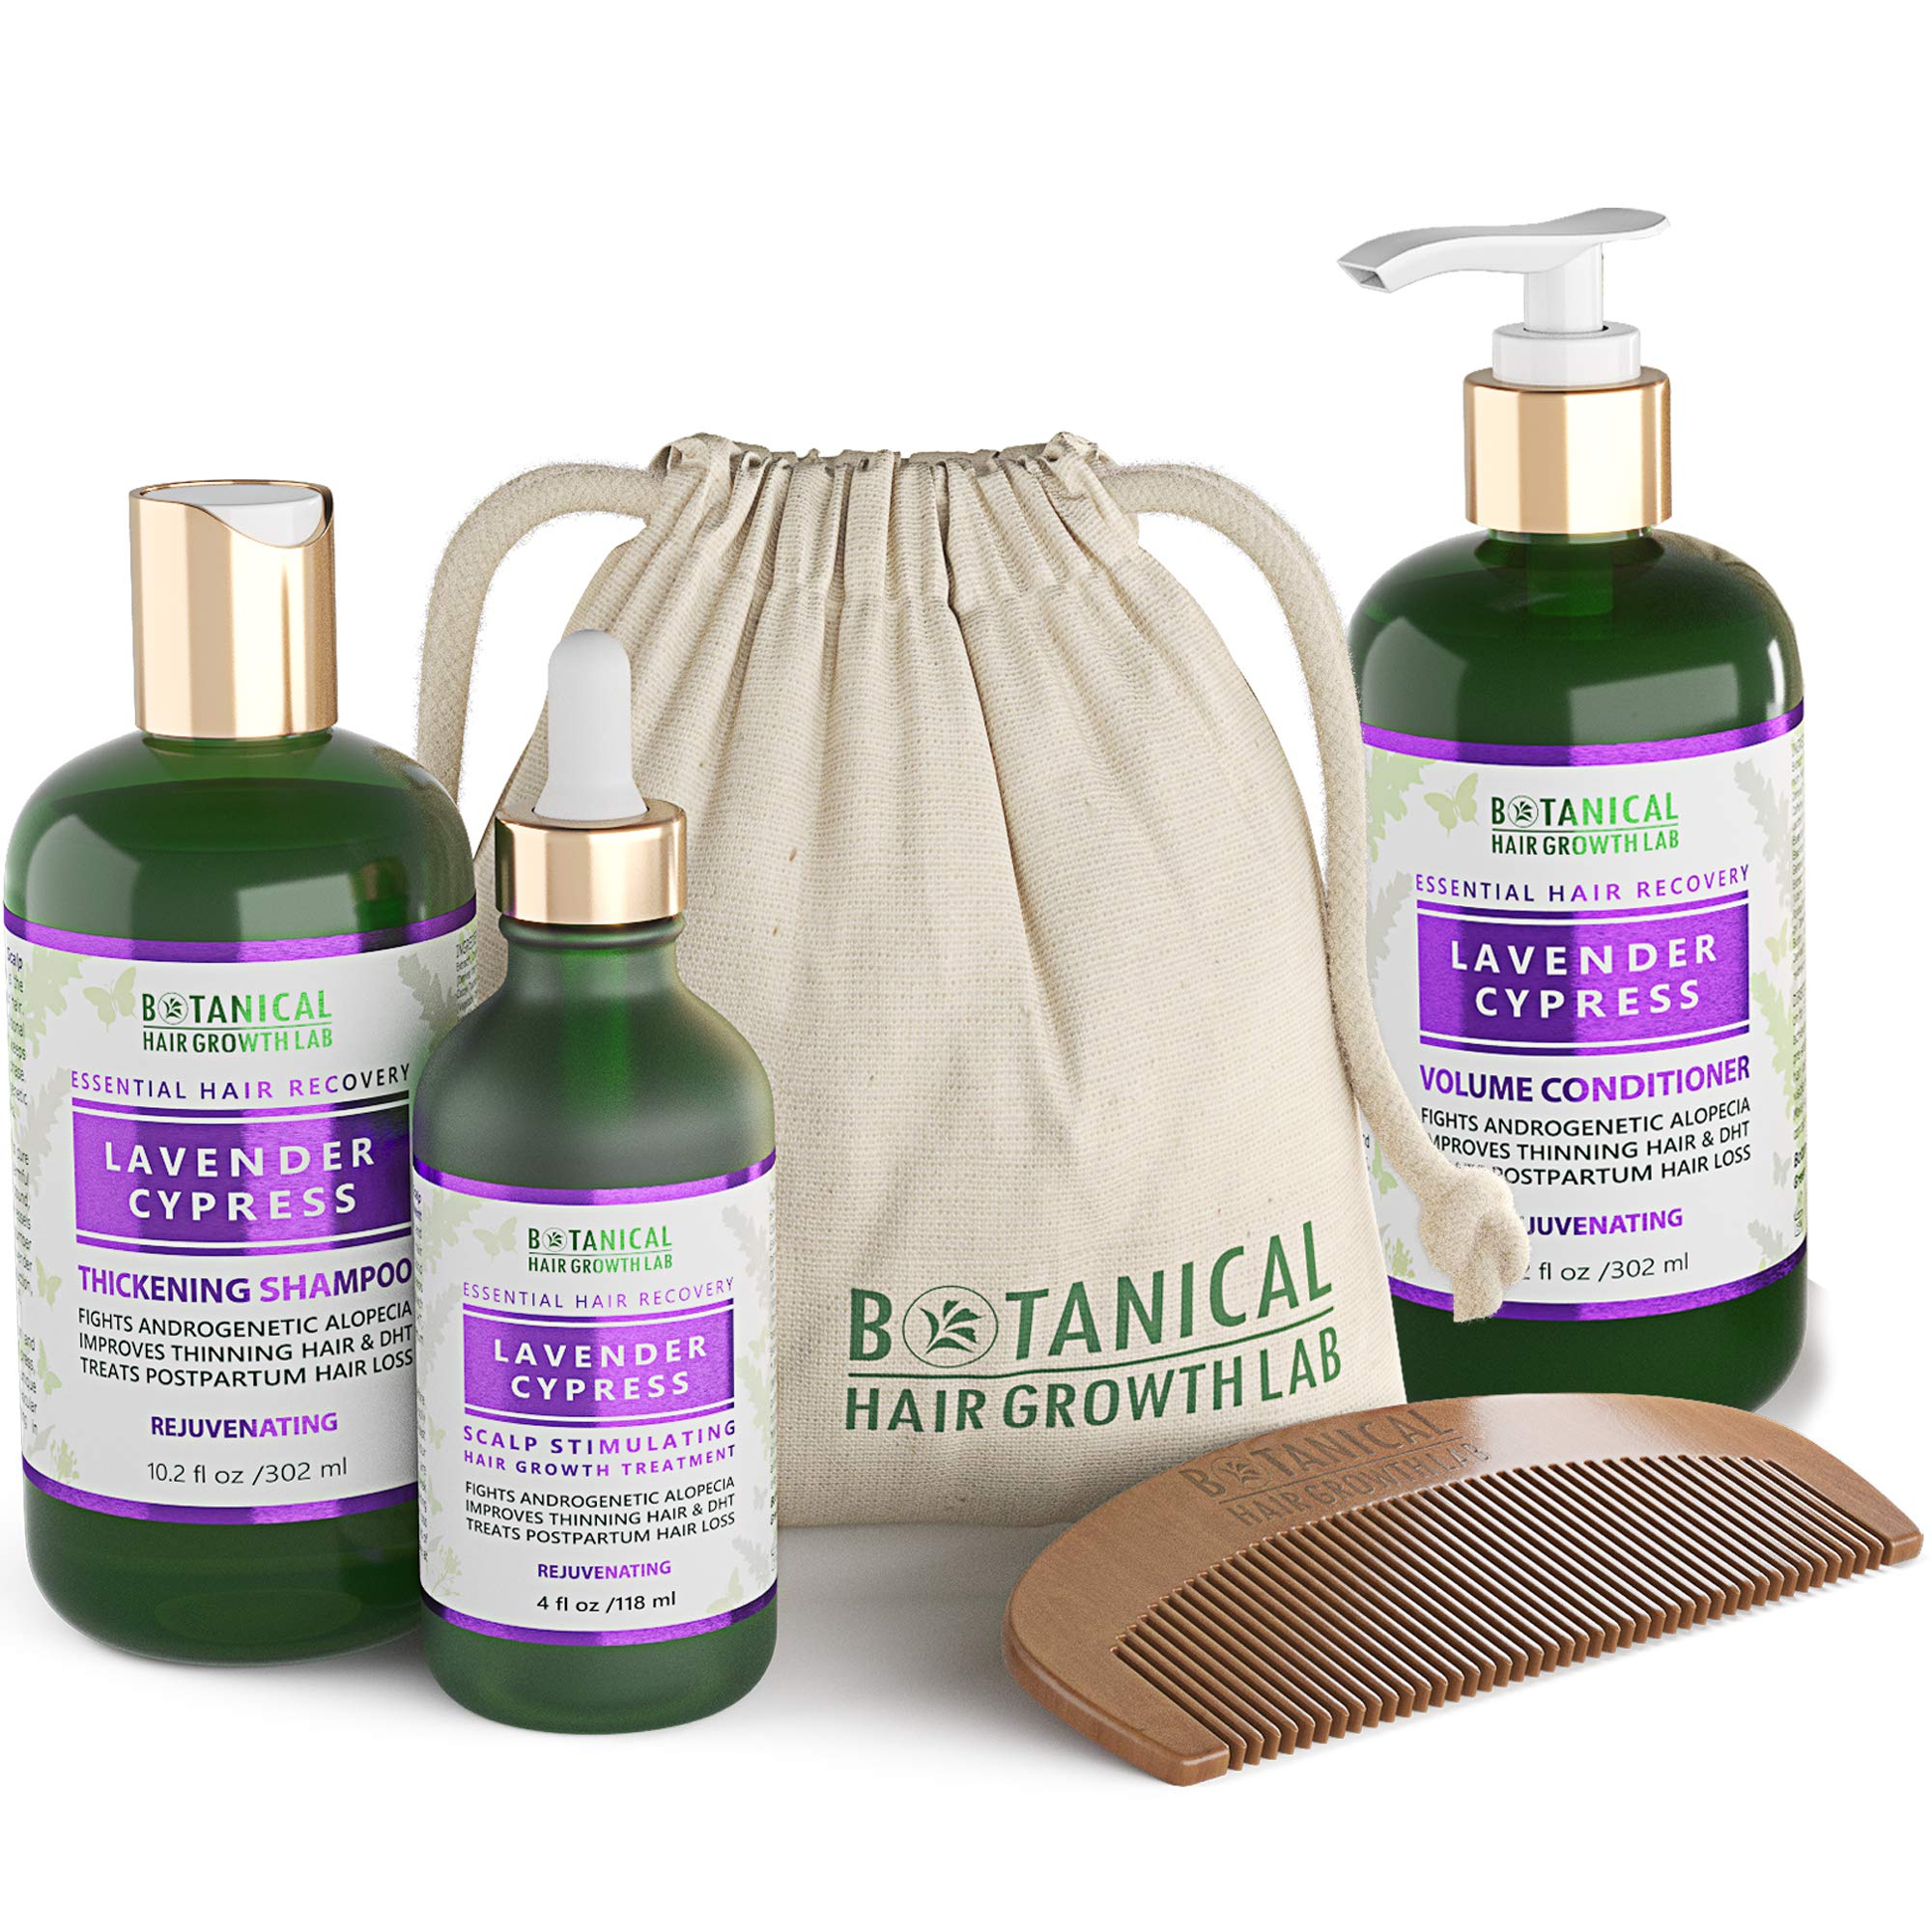 Botanical Hair Growth Lab Anti Hair Loss Alopecia Postpartum DHT Blocker Scalp Treatment Shampoo and Conditioner 3 Pc Value Set Lavender - Cypress Hair Growth Botanical For Hair Thinning Prevention by BOTANICAL HAIR GROWTH LAB